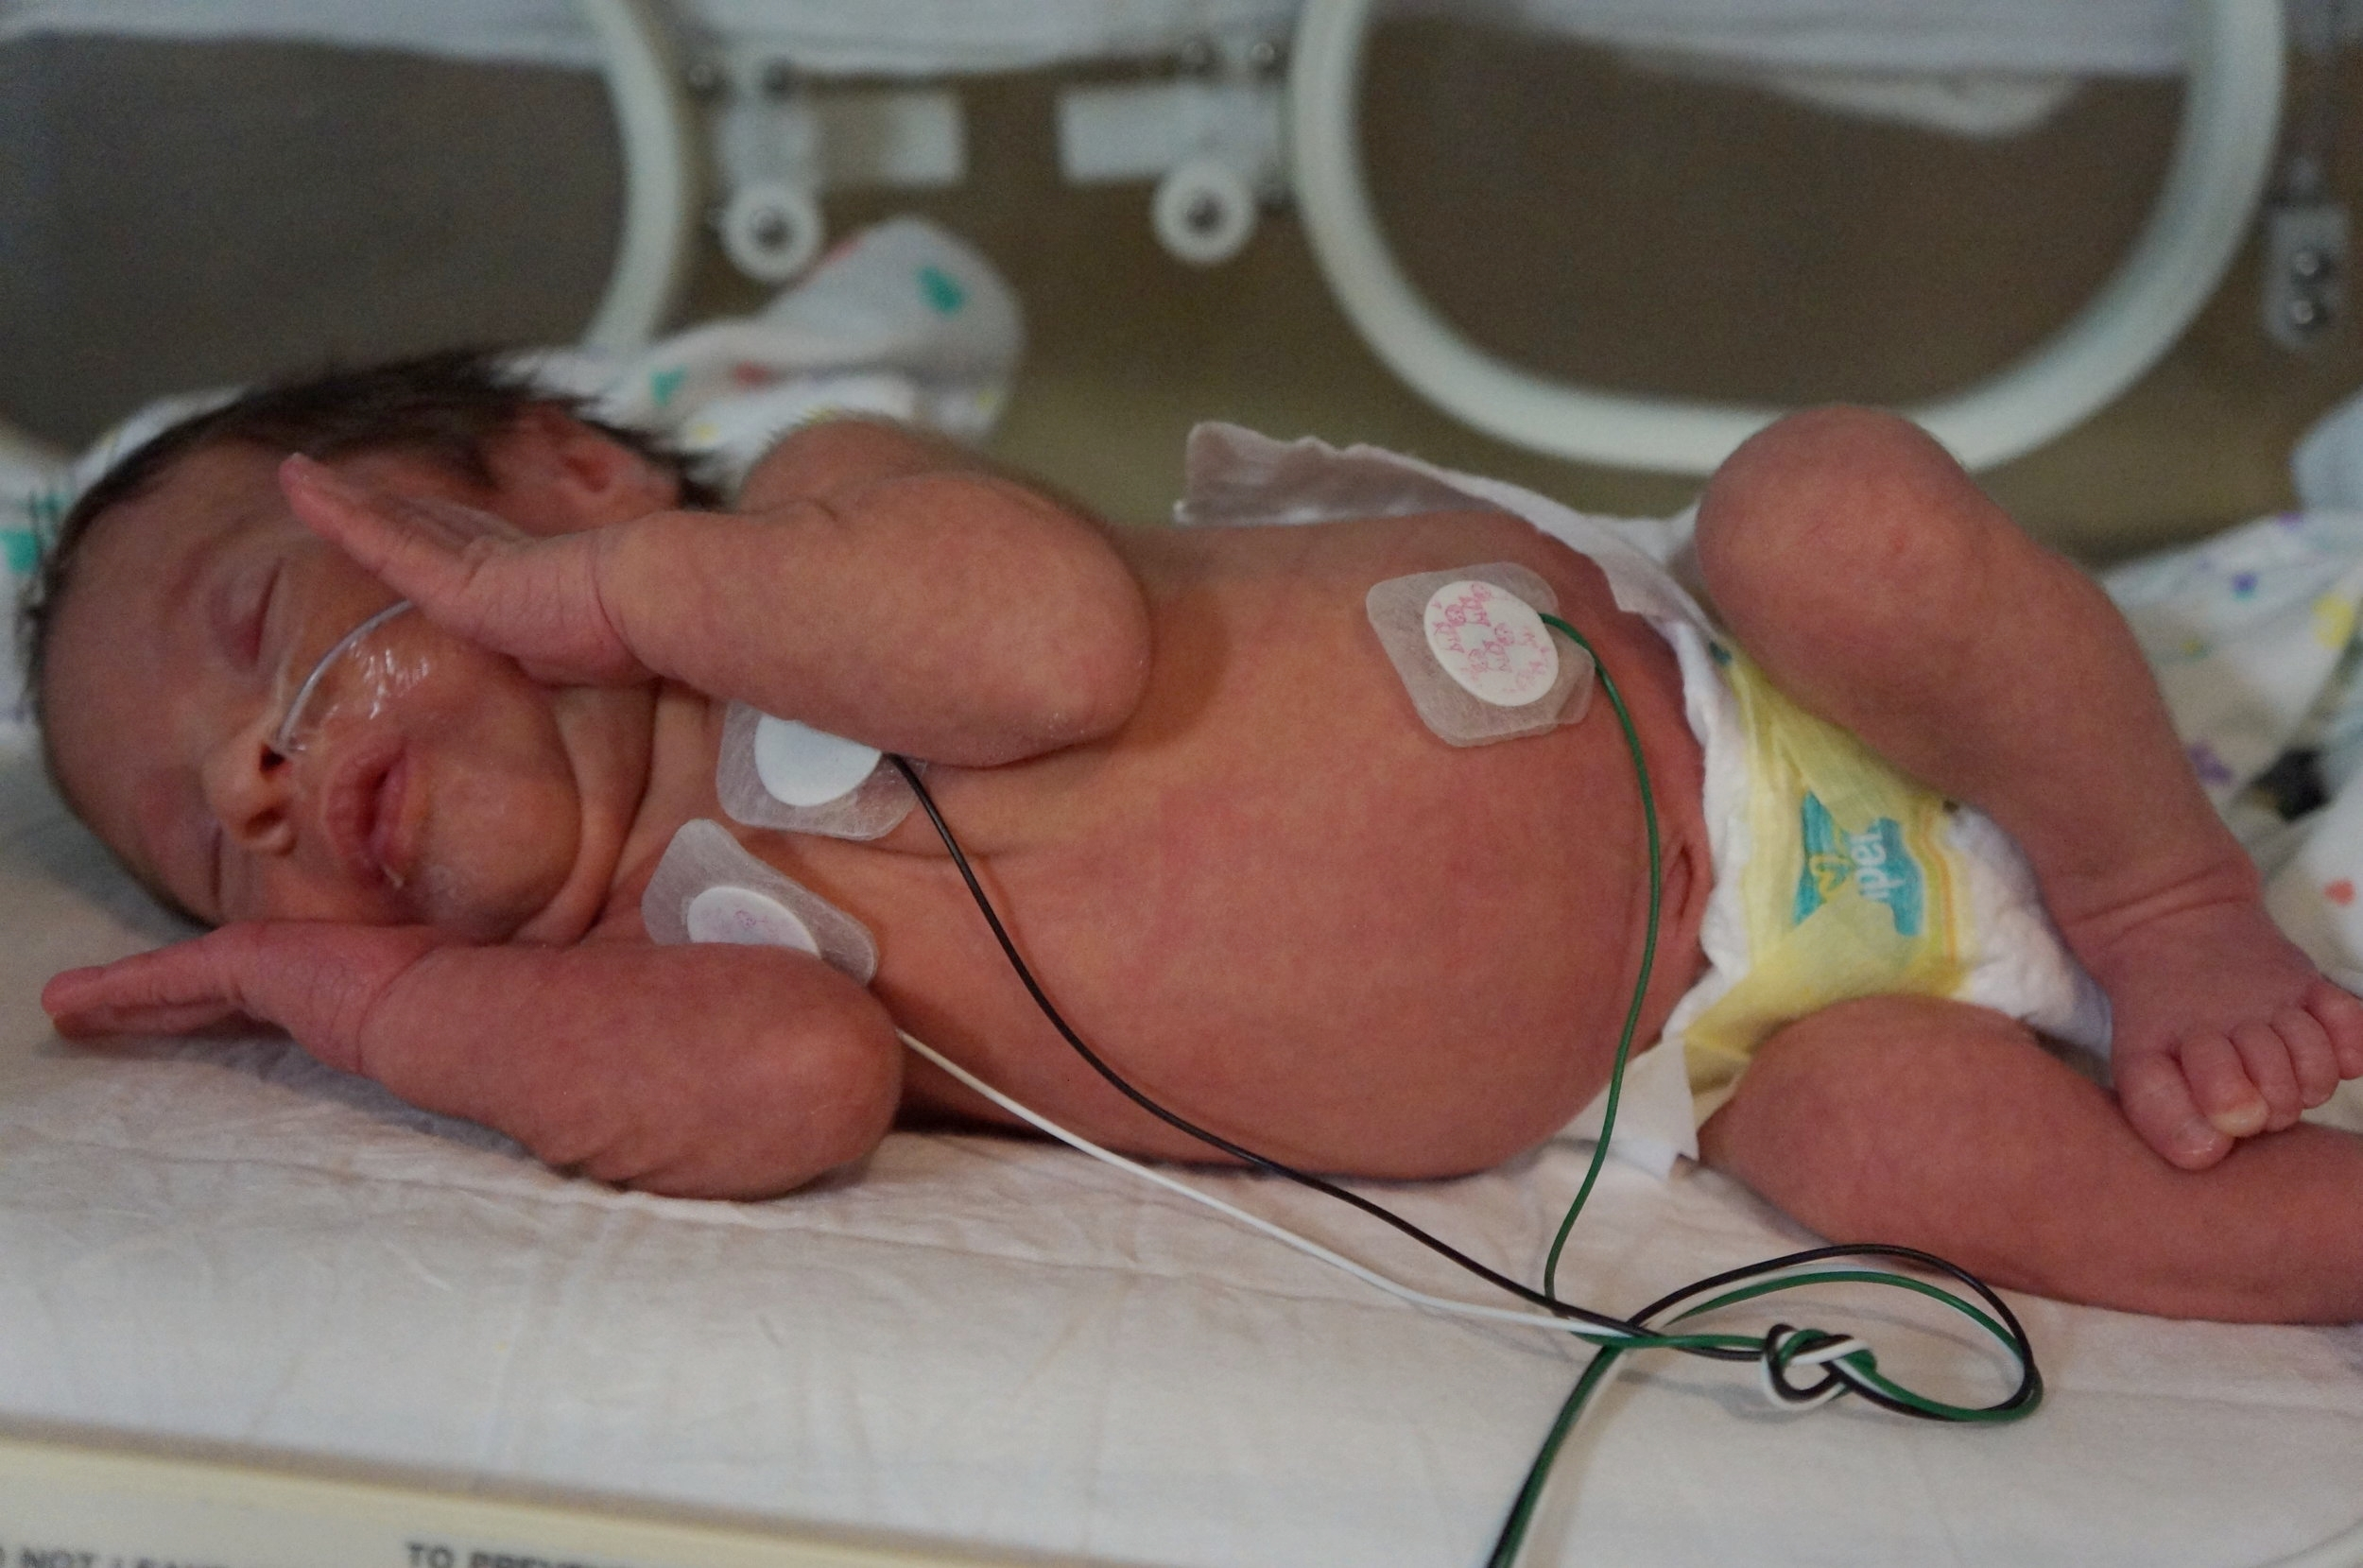 Beau with his leads and feeding tube in the NICU. The nose tube was a big improvement over the one they originally had in his mouth. At this point, he was also off of oxygen and no longer required an IV.